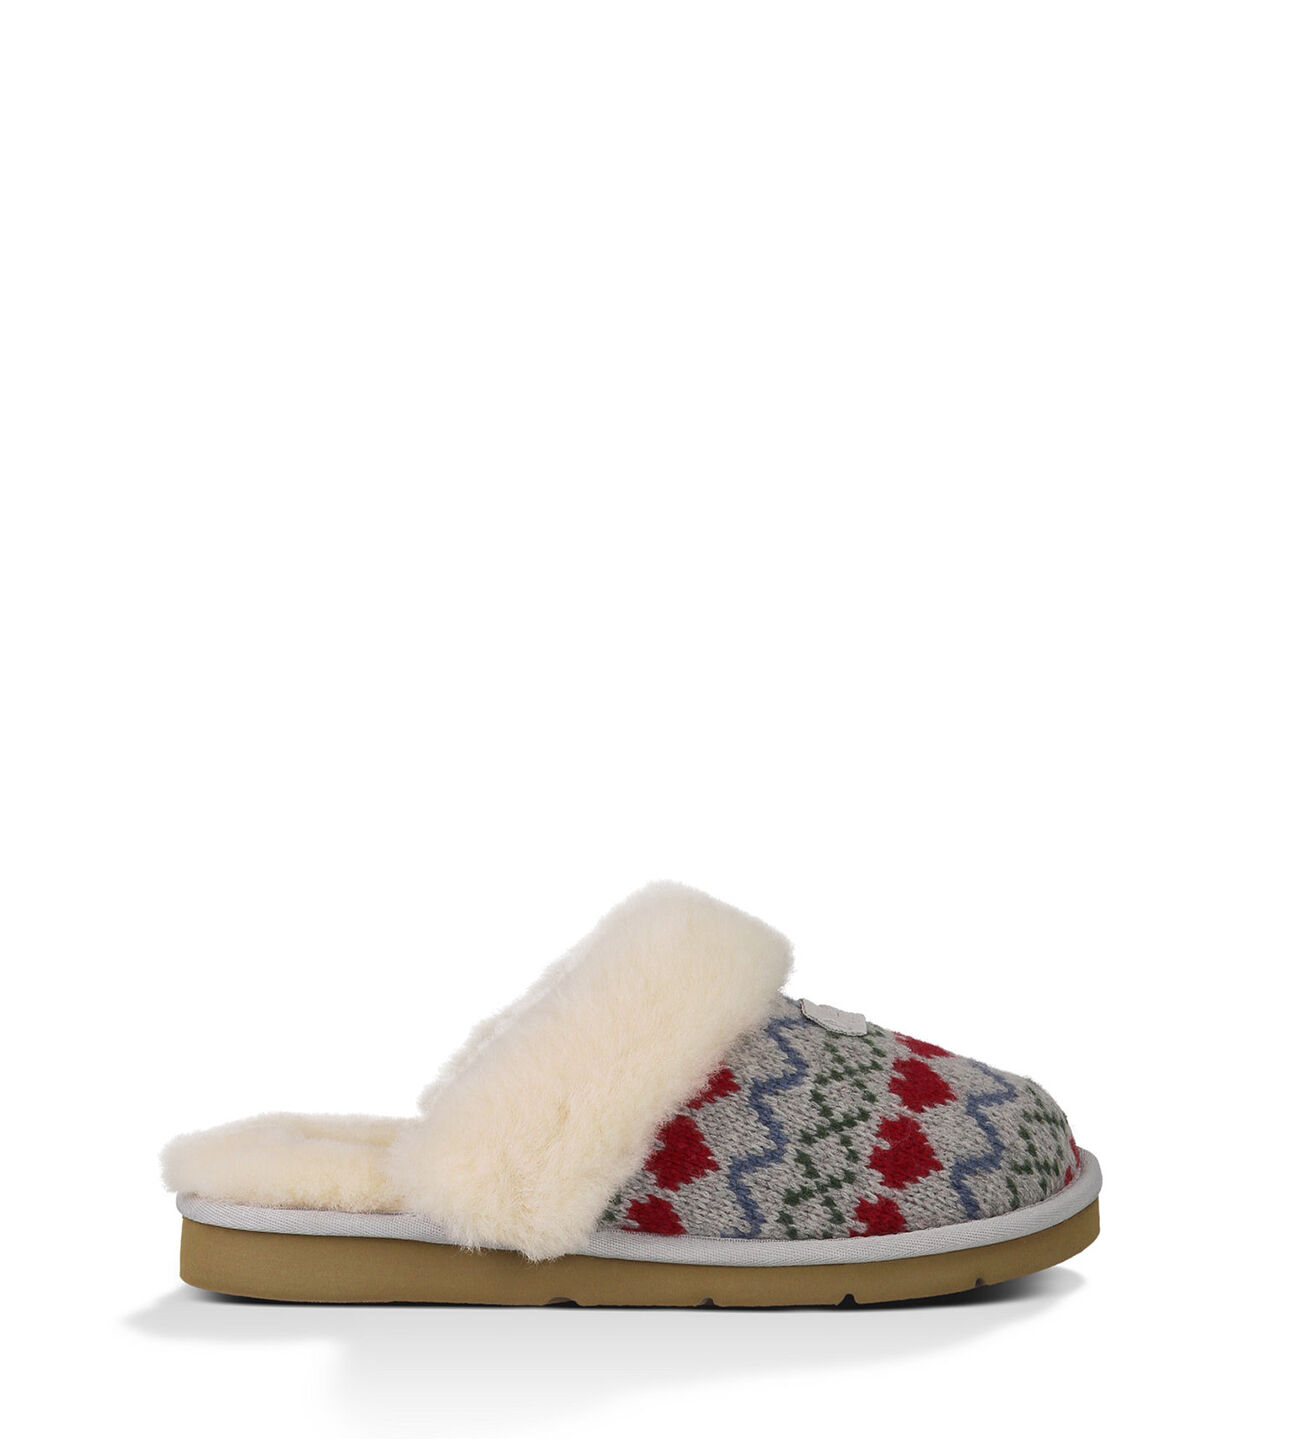 b935d0ac978 Ugg Knit Heart Slippers - cheap watches mgc-gas.com